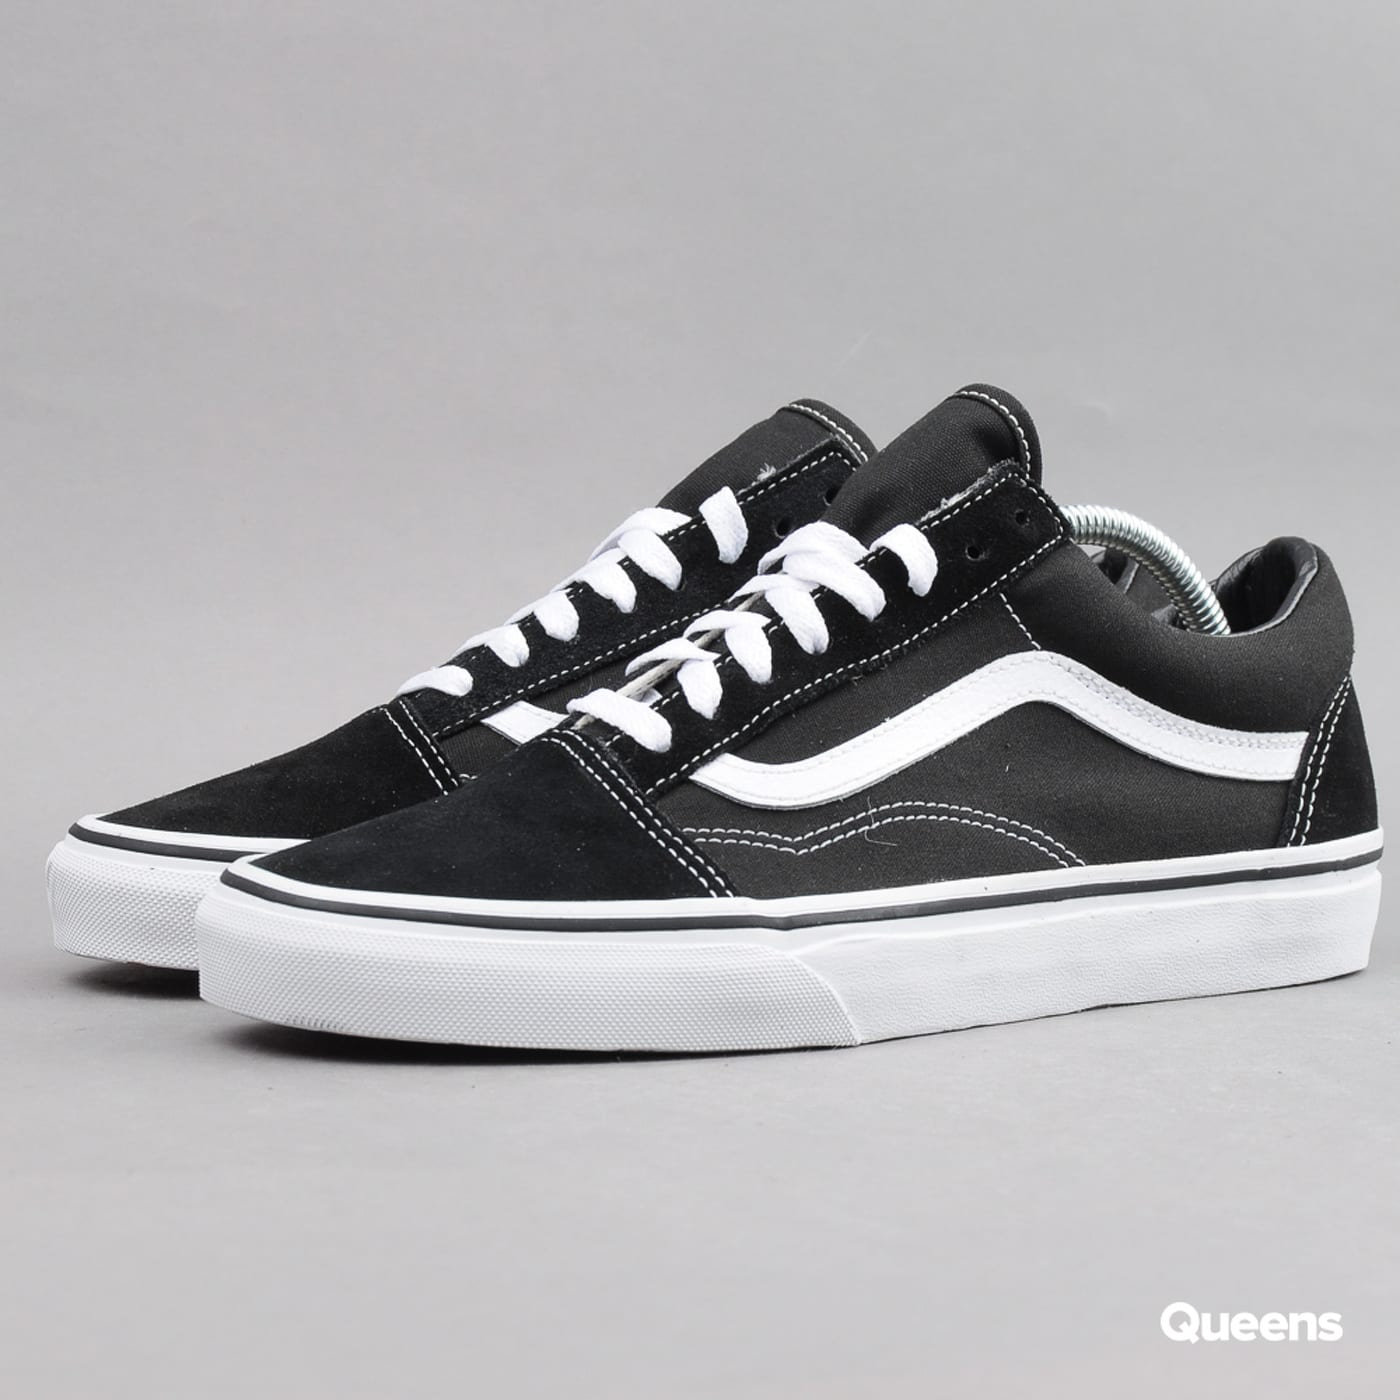 Boty Vans Old Skool (VD3HY28) – Queens 💚 7583f034e2